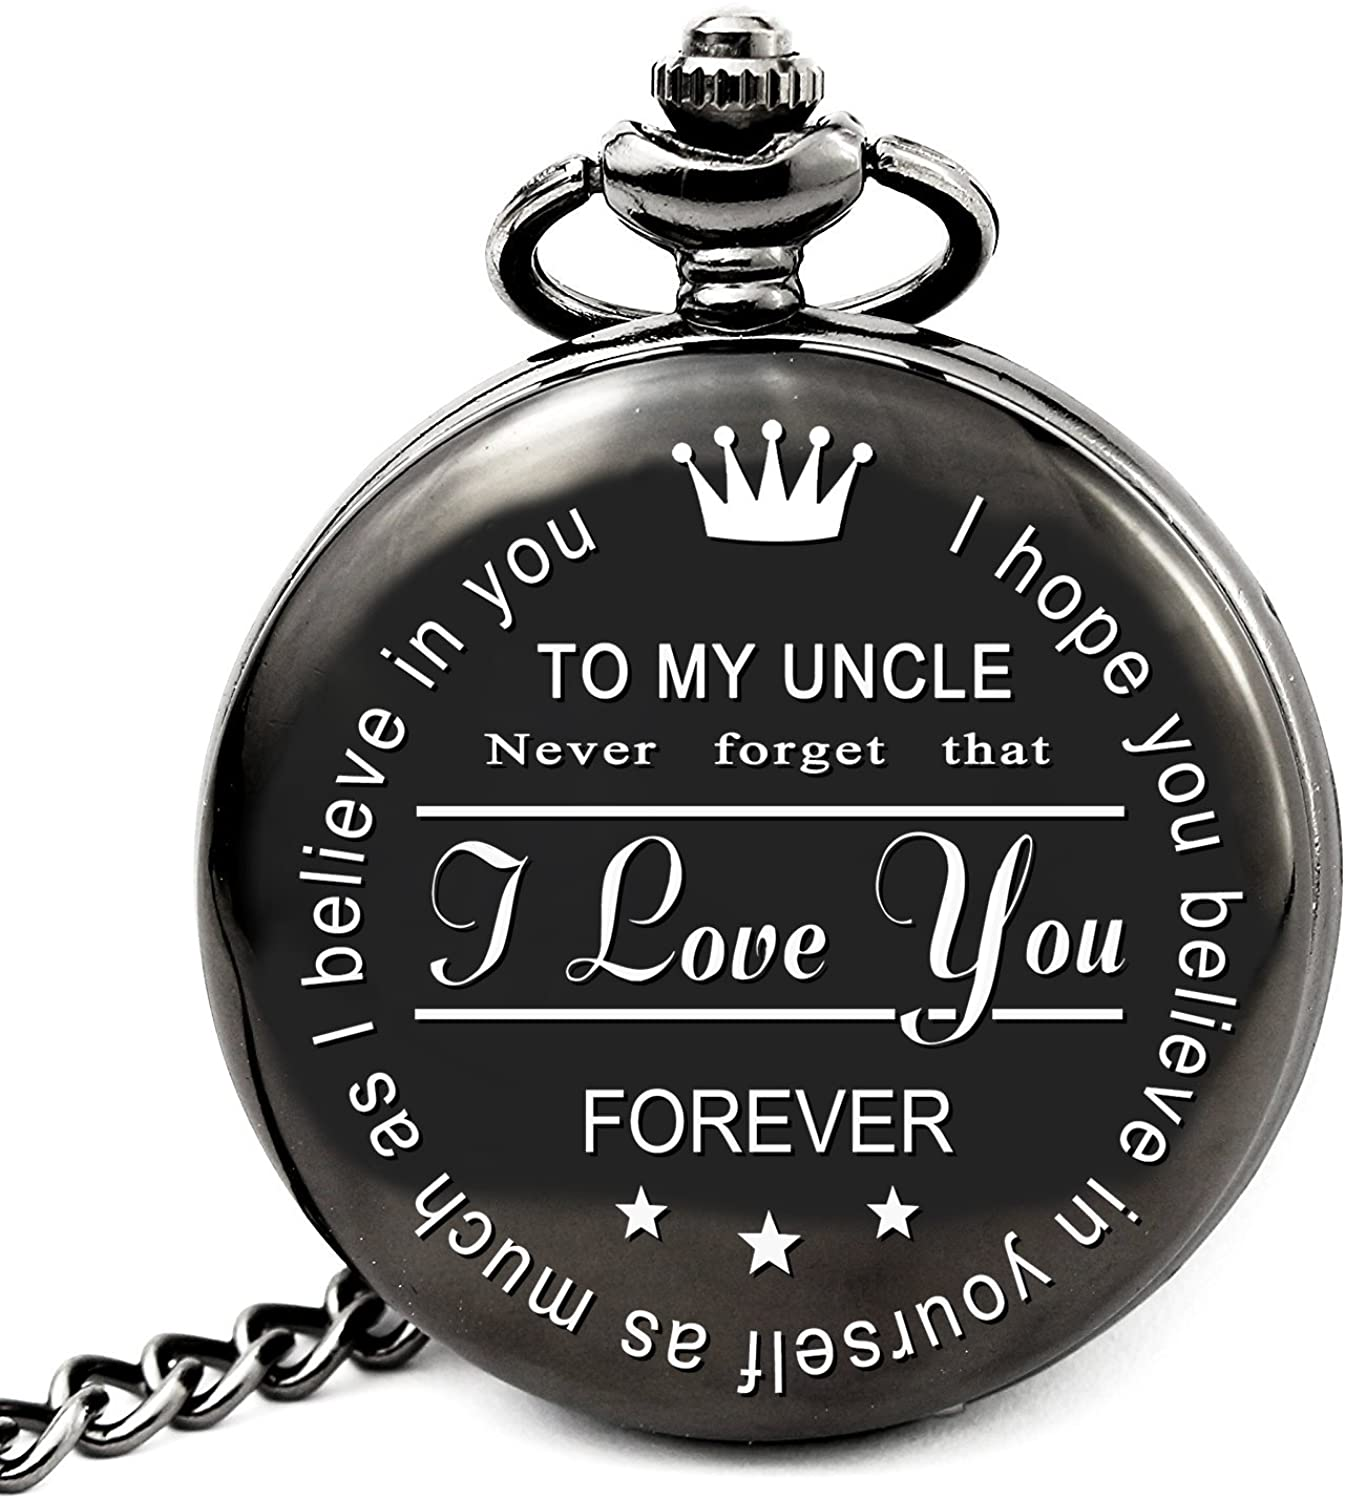 Gifts for Uncle from Nephew Niece Unique Gifts for Men Engraved Pocket Watch with Chain (to Uncle, Black)